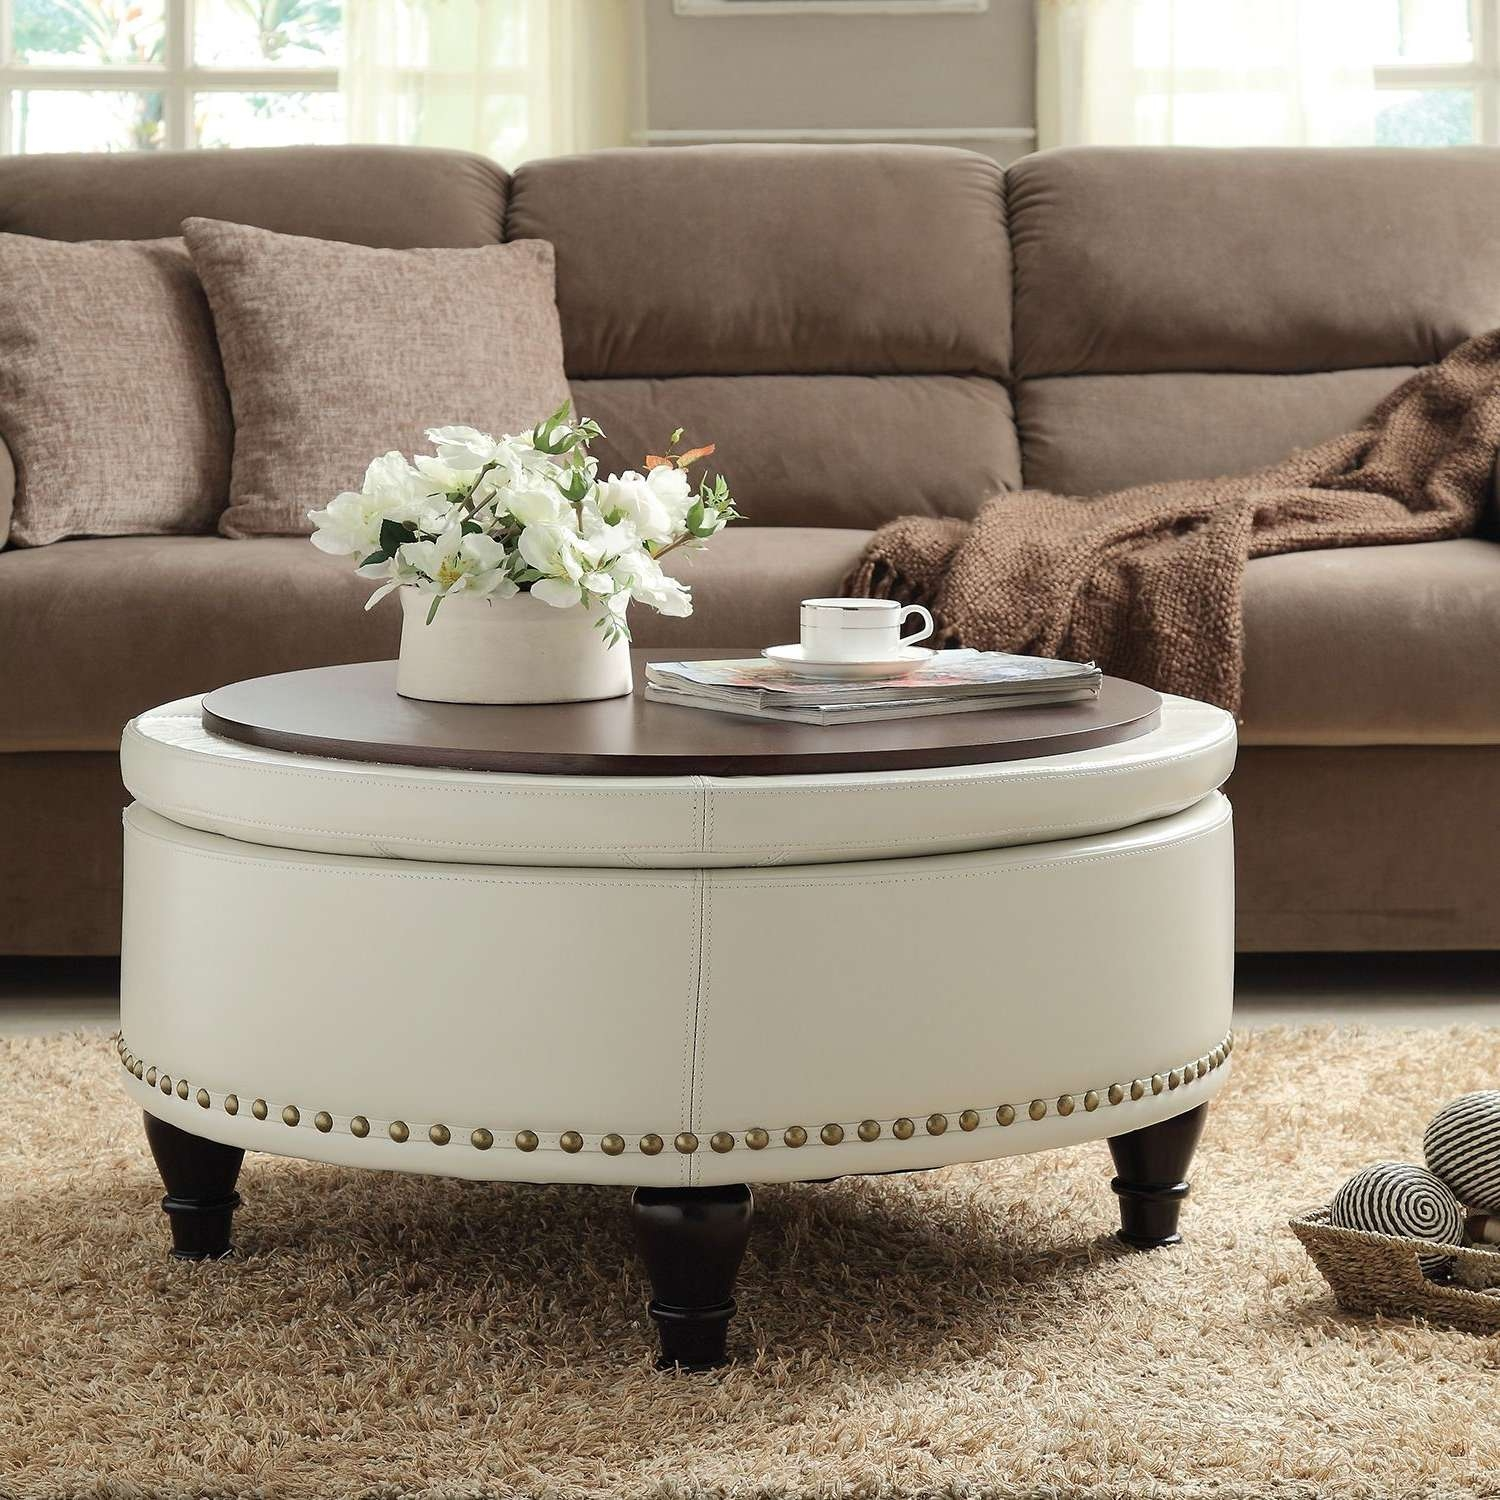 Furniture Ottoman Coffee Table Tray Ideas Hi Res Wallpaper Pertaining To Current Round Coffee Table Trays (View 18 of 20)